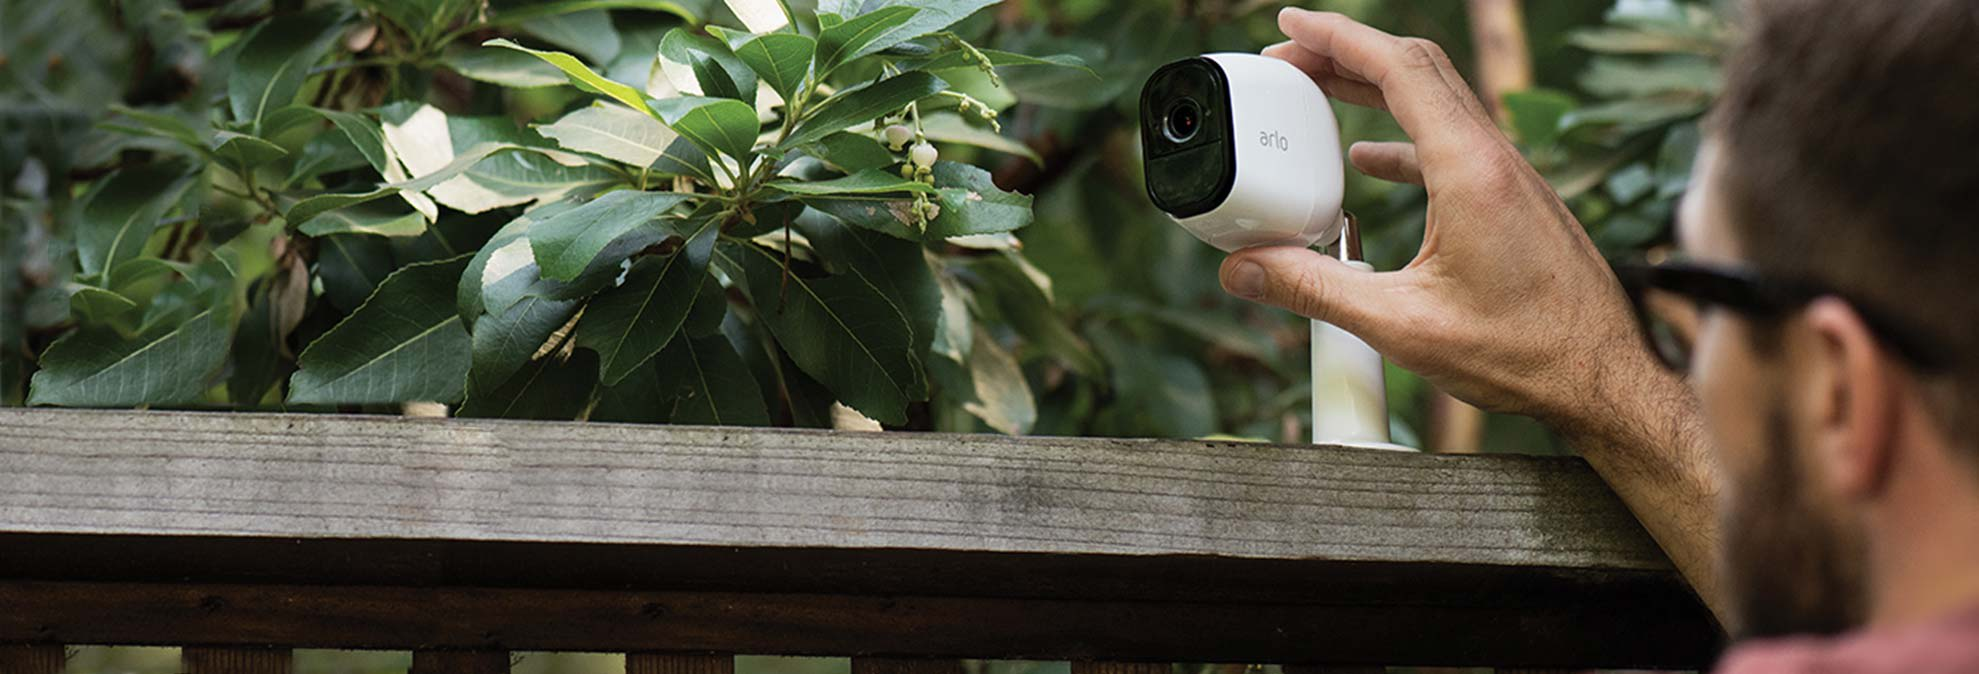 Best Home Security Camera Buying Guide - Consumer Reports